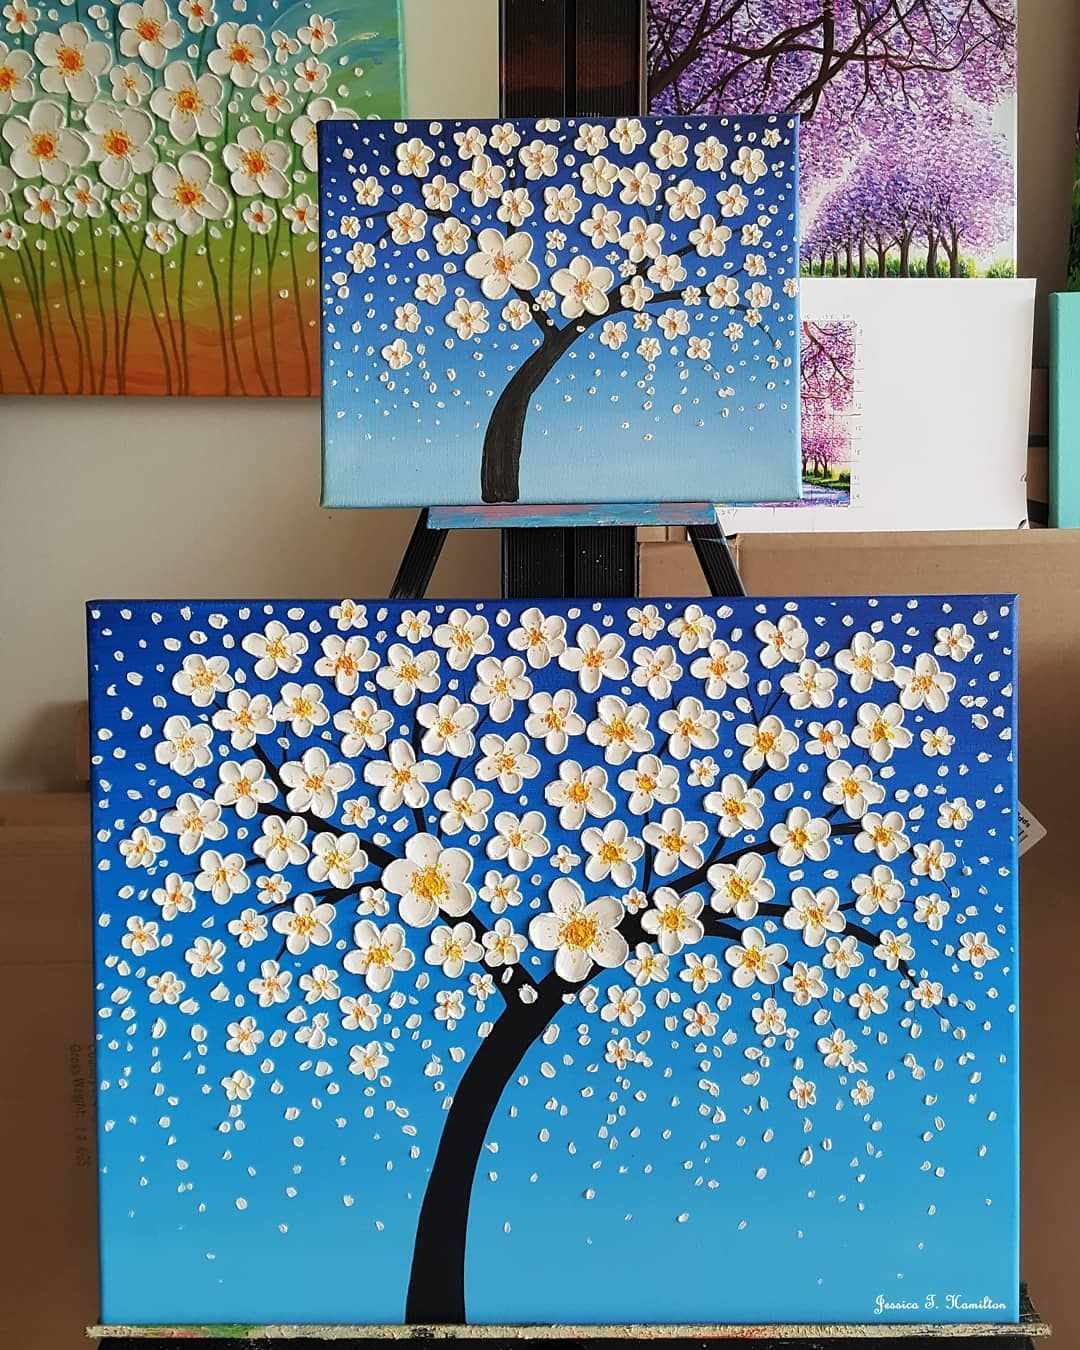 50 Easy Textured Flowers Canvas Painting Ideas For Beginners In 2020 Flower Painting Canvas Canvas Painting Designs Easy Canvas Painting